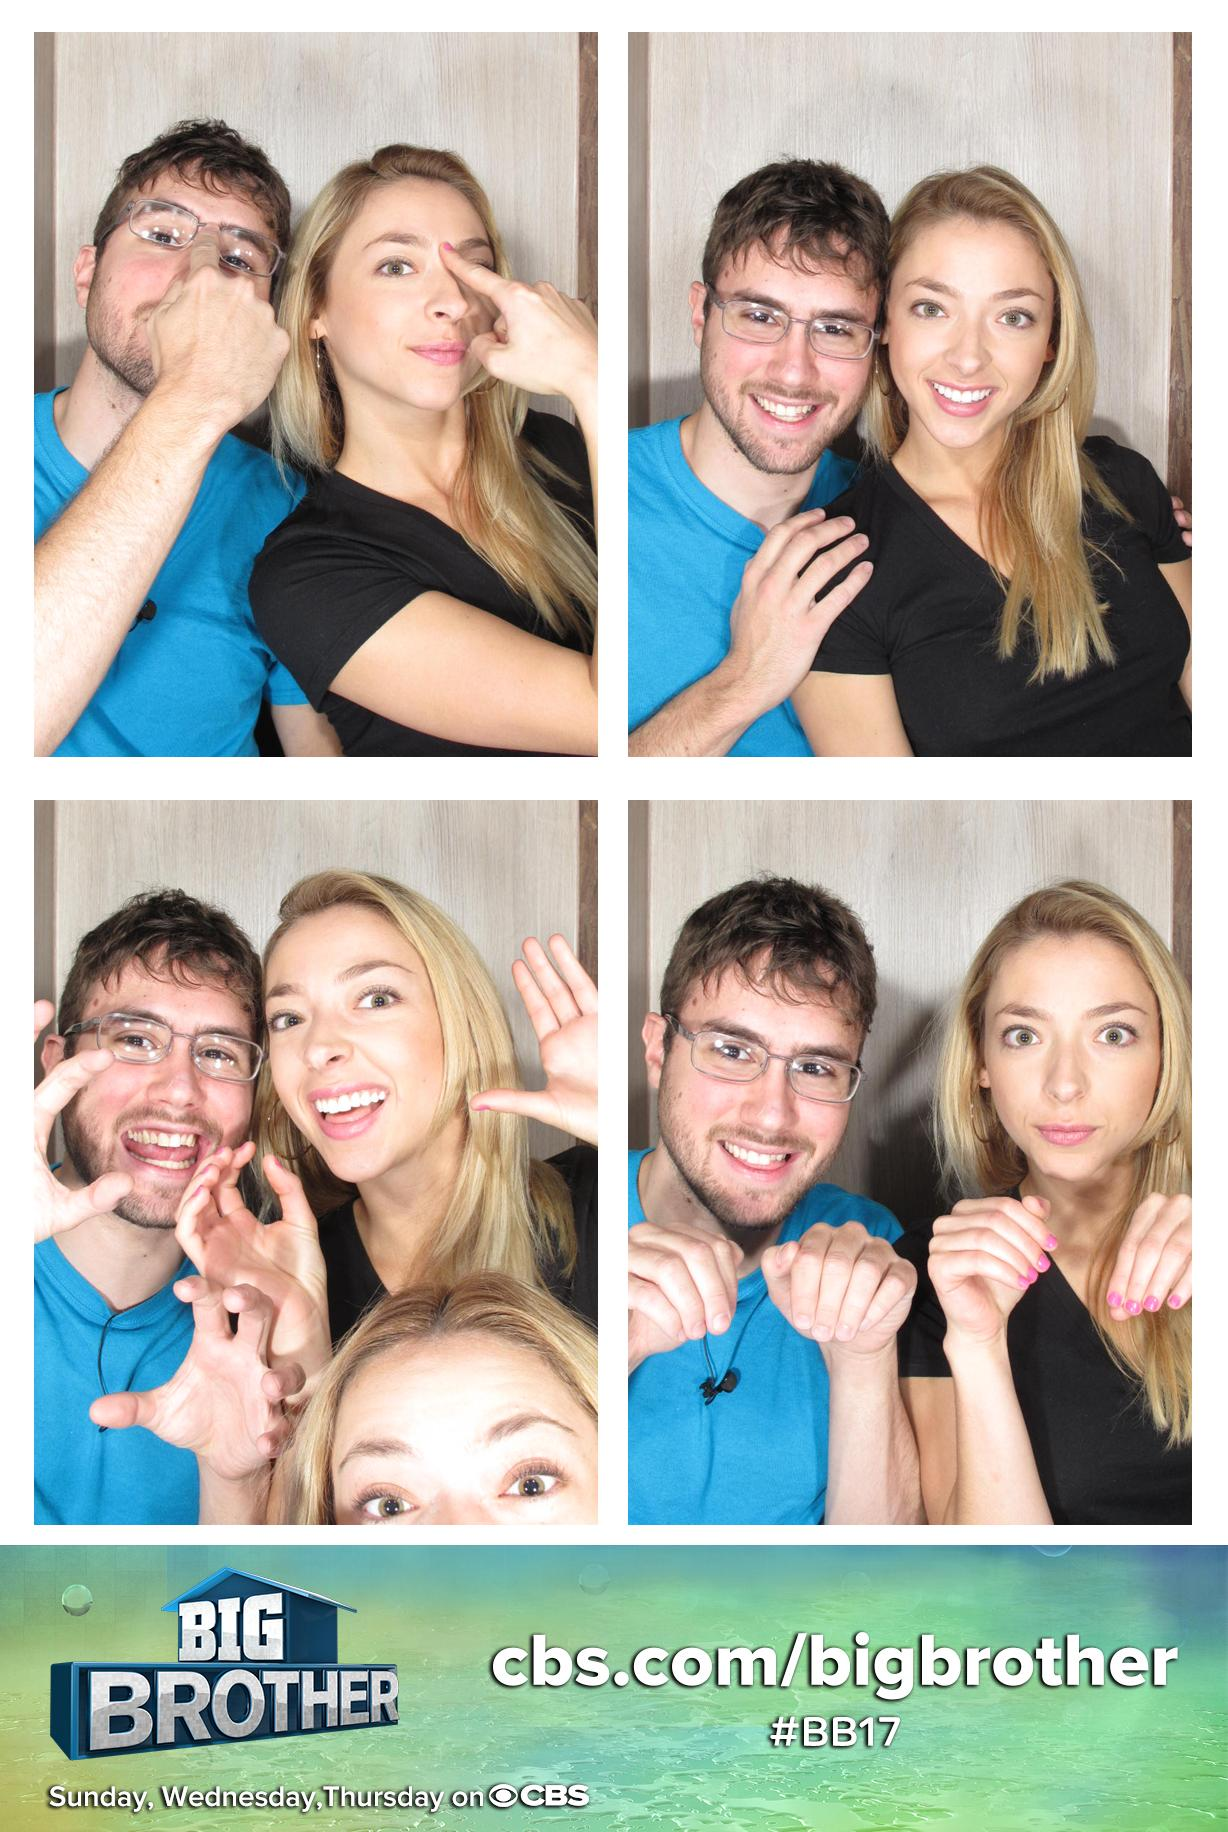 Photo booths are for photo-bombing